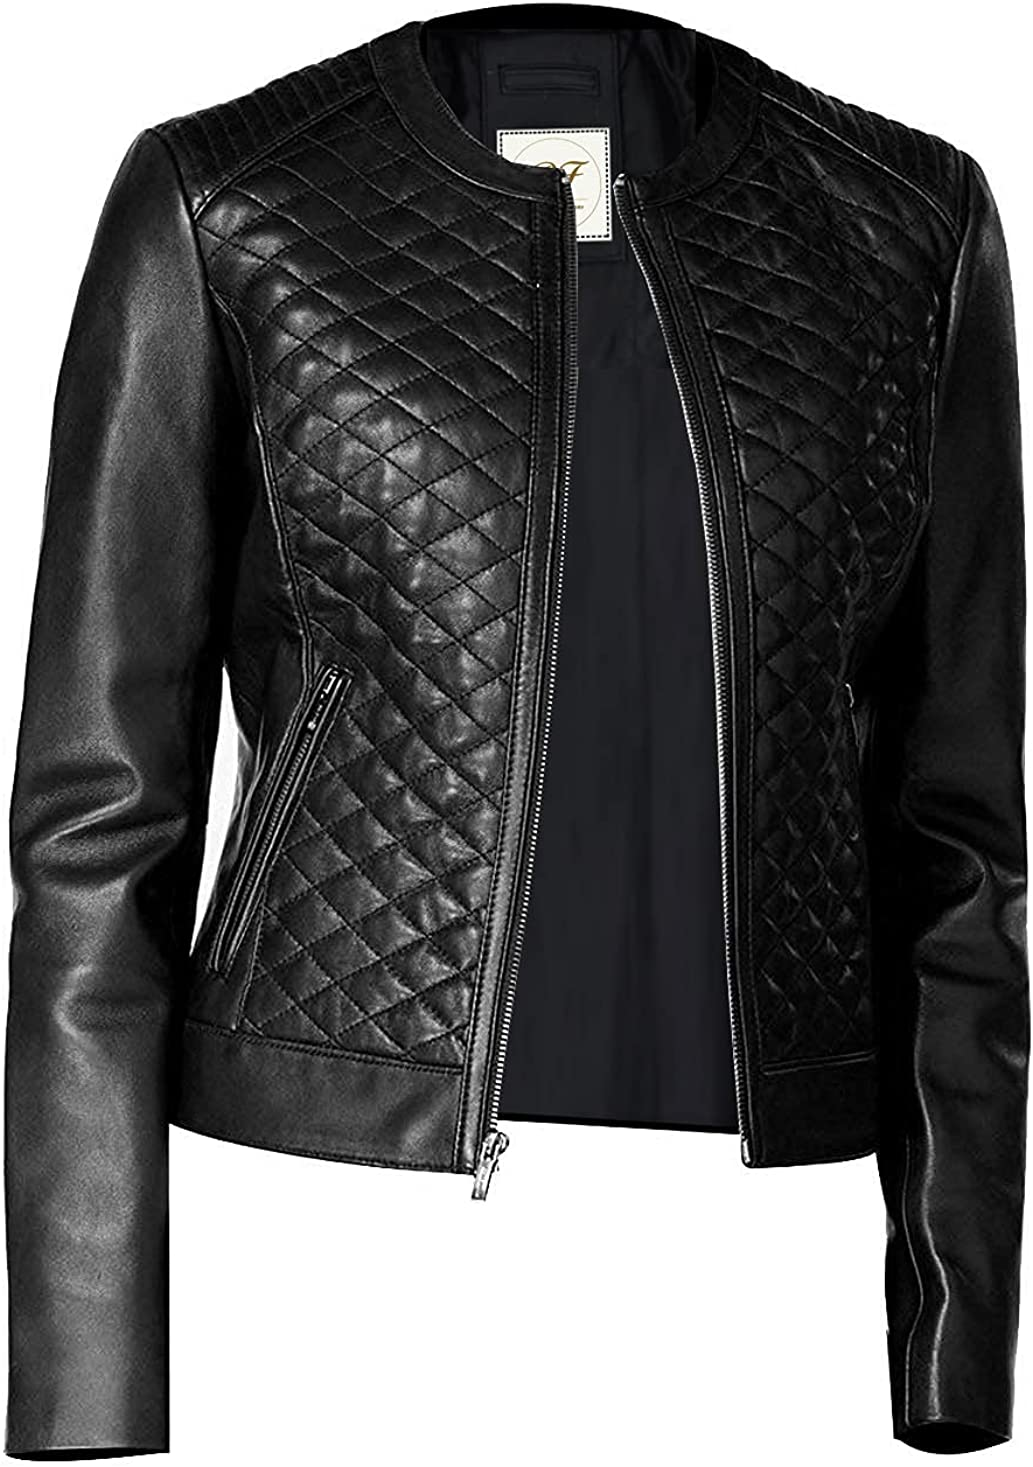 Pelletteria Factory Perfection Personified Stylish Quilted Black Faux Leather Jacket for Women